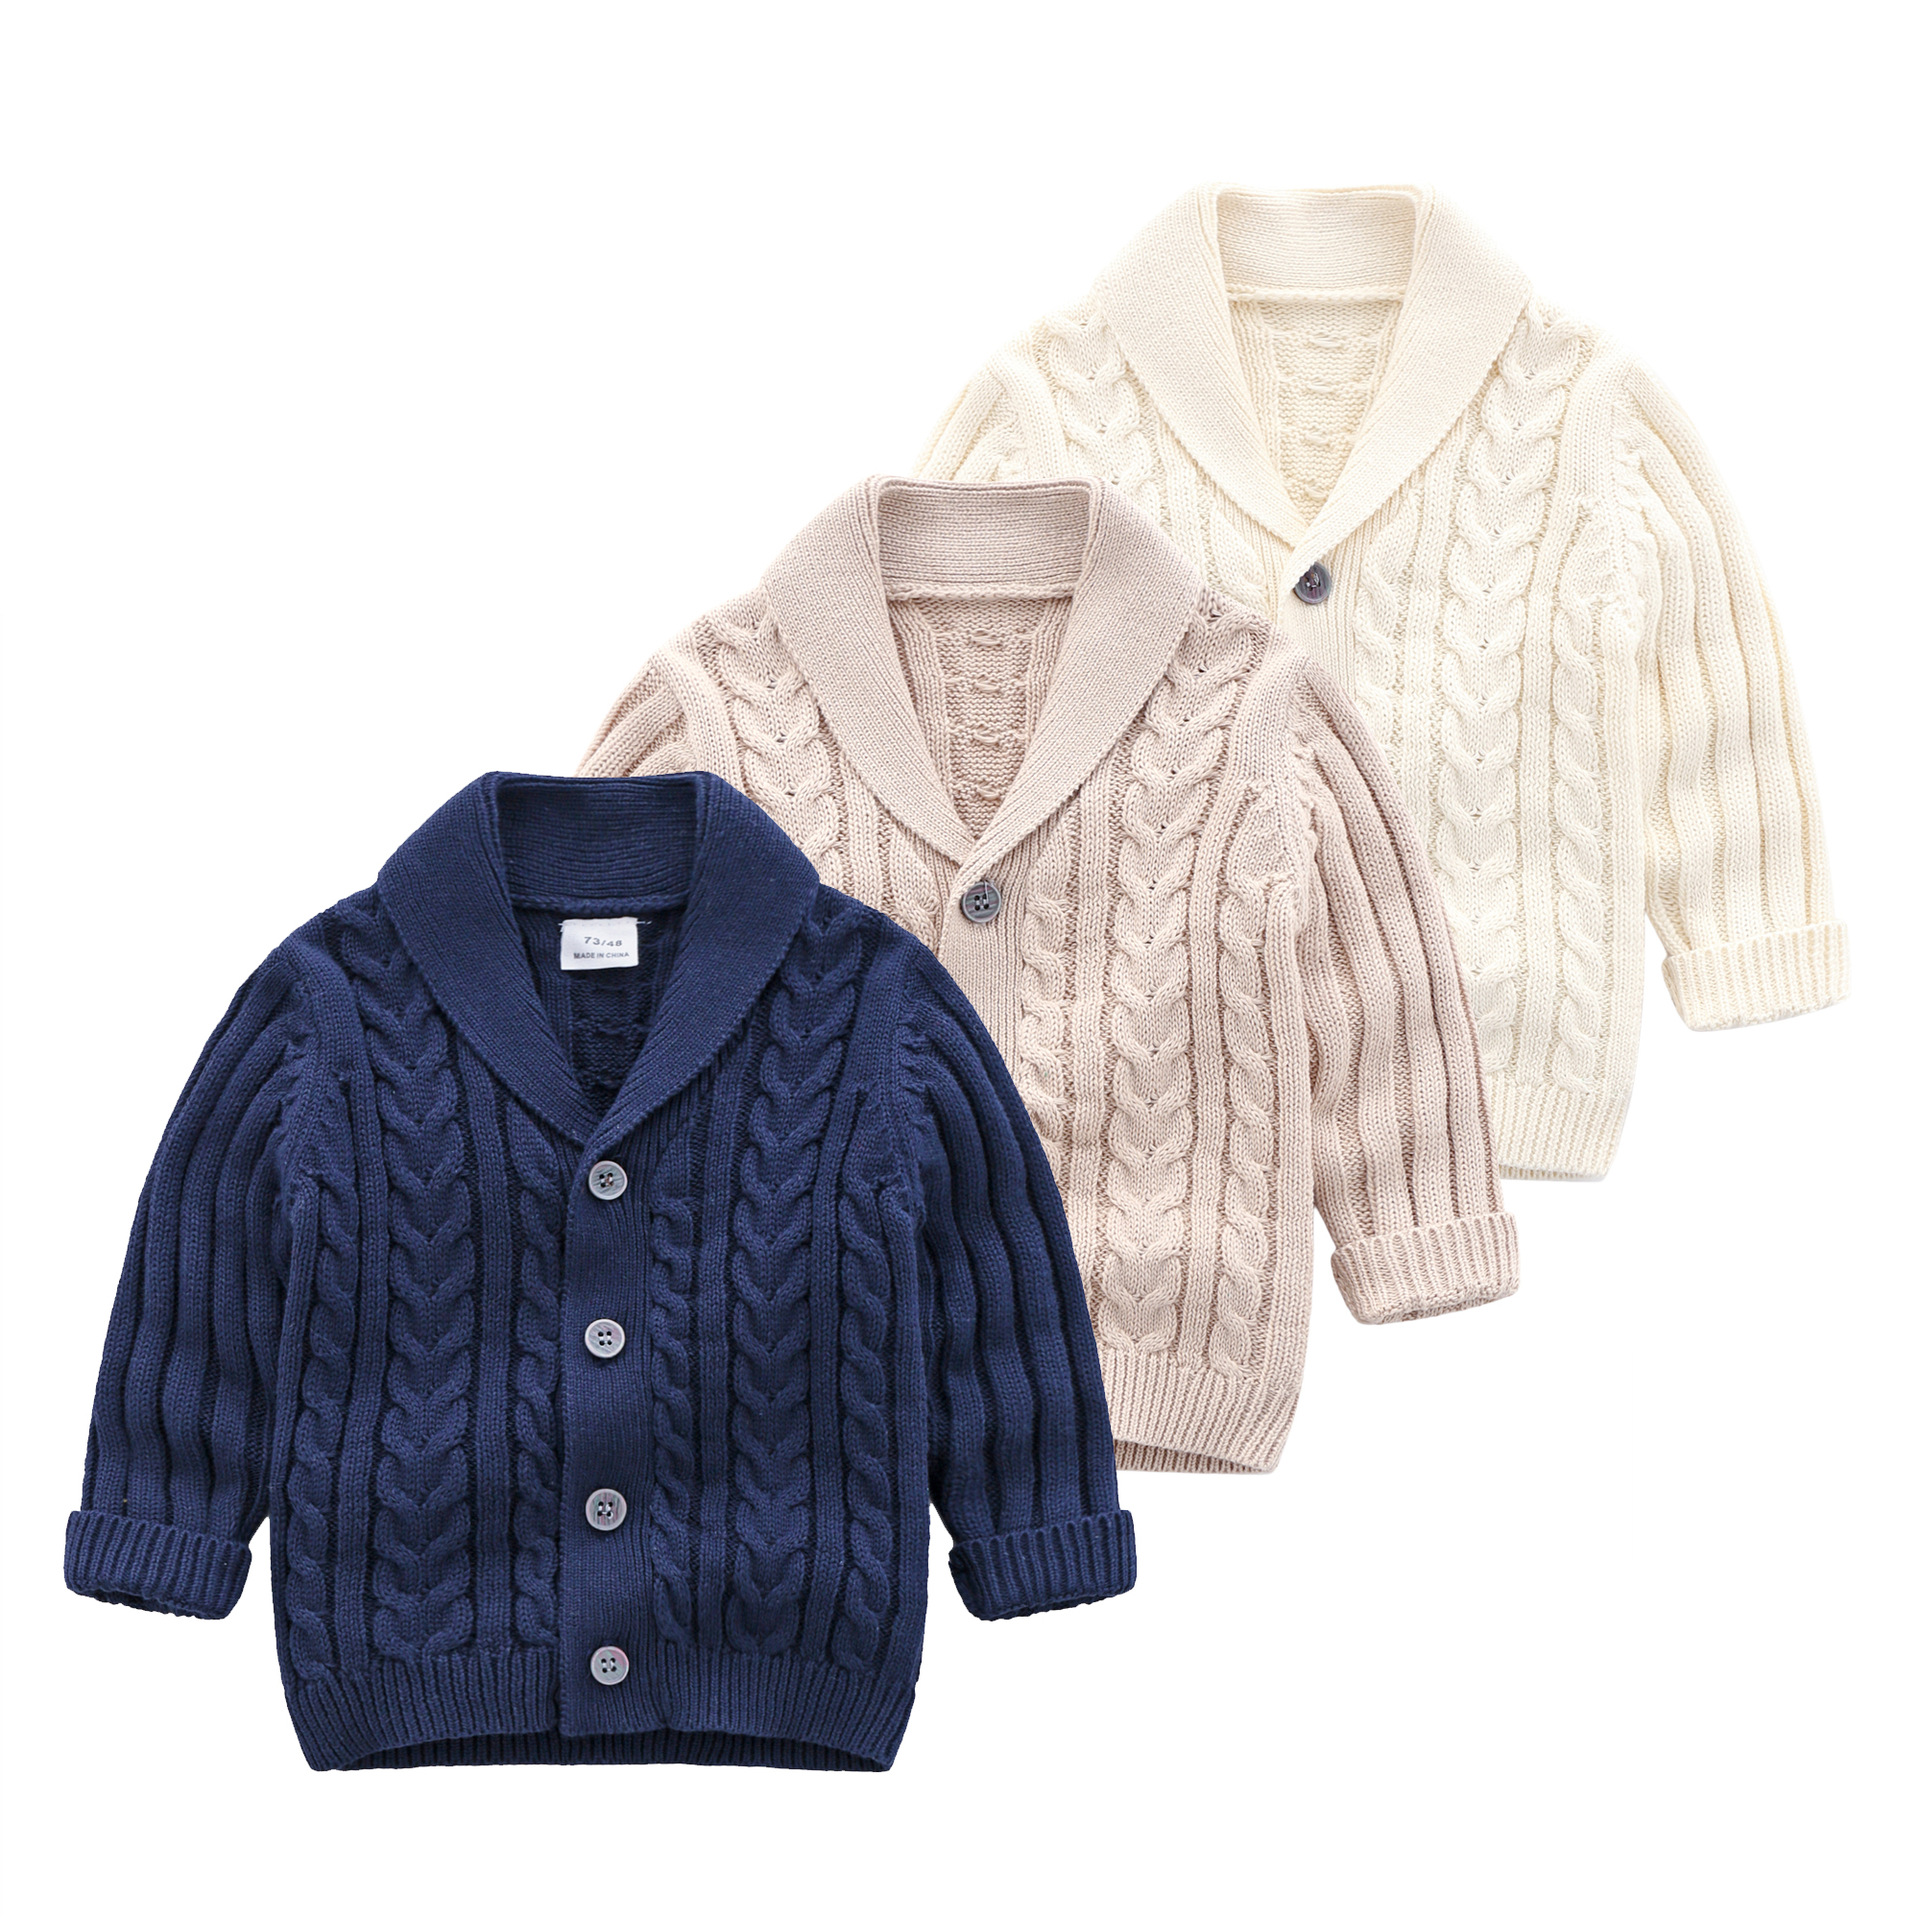 1-4T Baby Boys Spring Autumn Cardigan Sweater V-Neck Buttons Pockets Cotton Tops